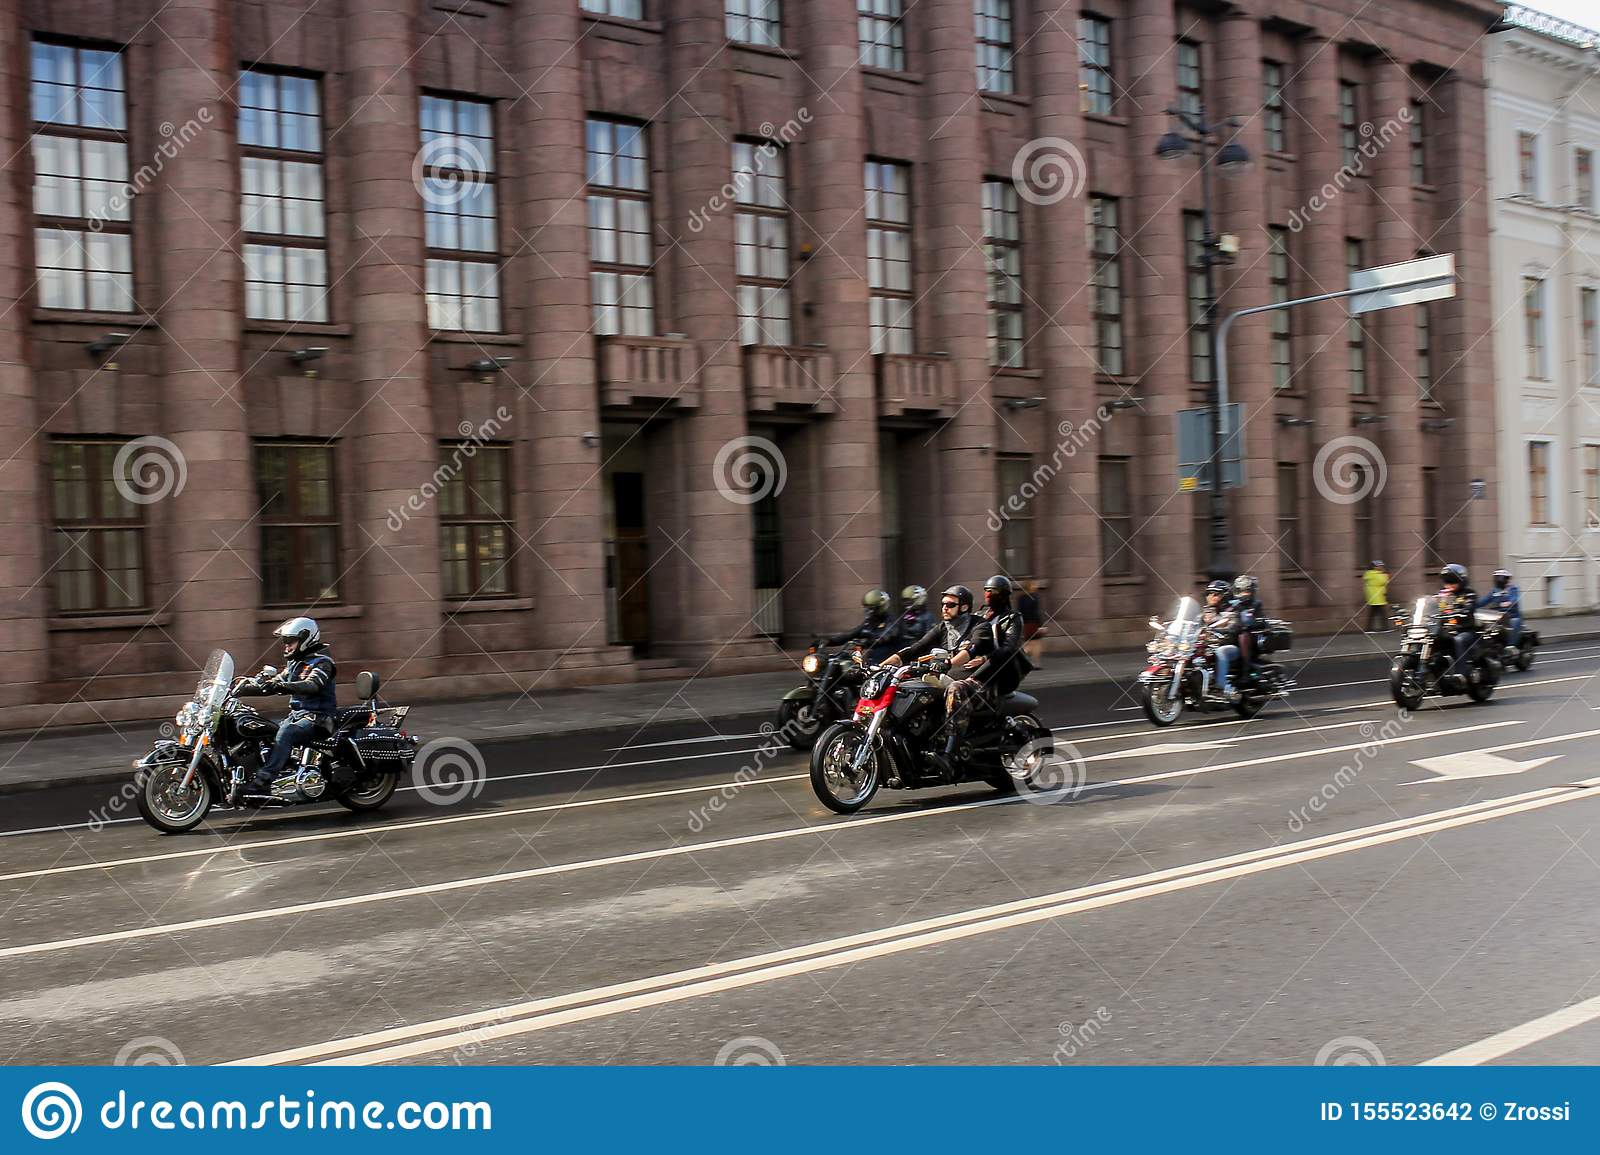 Group of bikers in motion